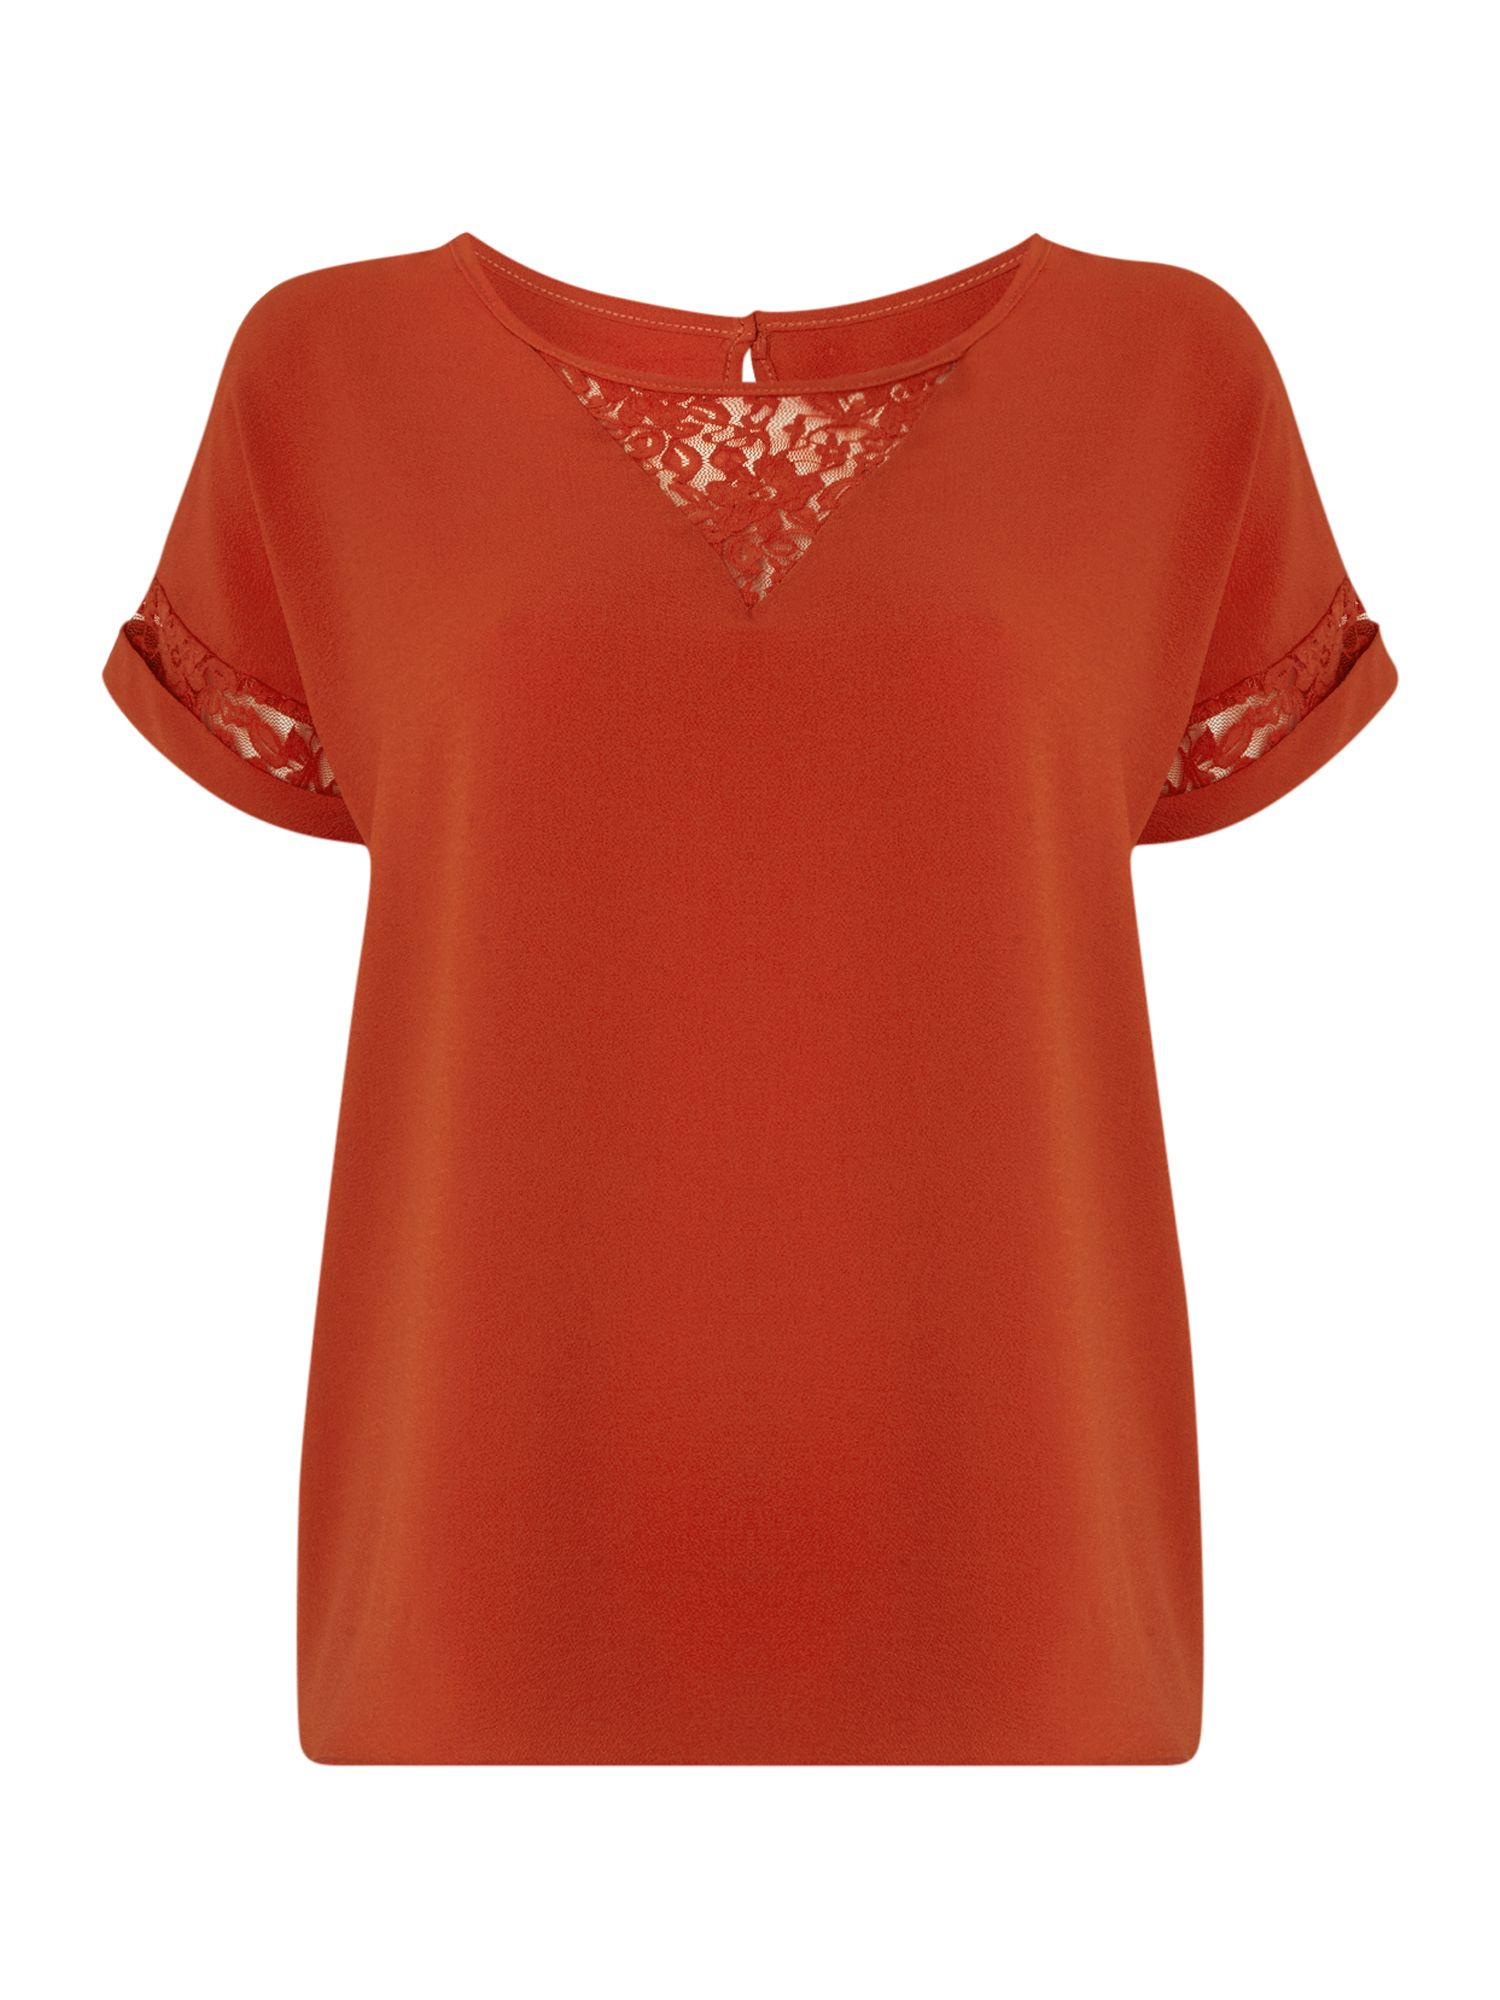 Therapy Lace Detail Blouse, Burnt Orange